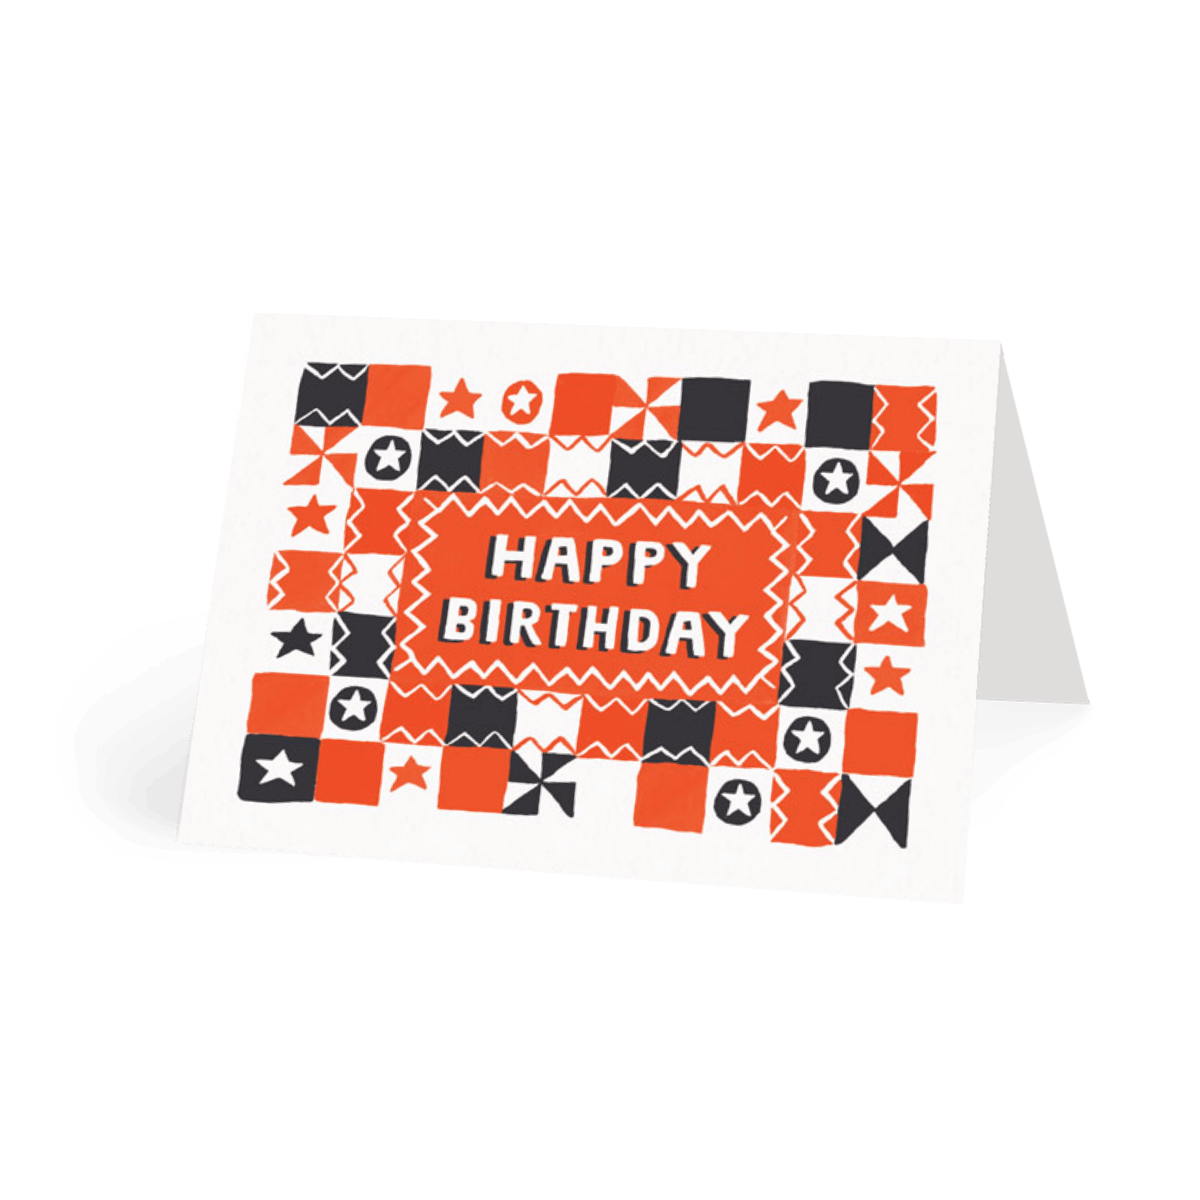 Https%3a%2f%2fwww.papier.com%2fproduct image%2f17013%2f14%2fcheckerboard birthday 4476 front 1485345296.png?ixlib=rb 1.1